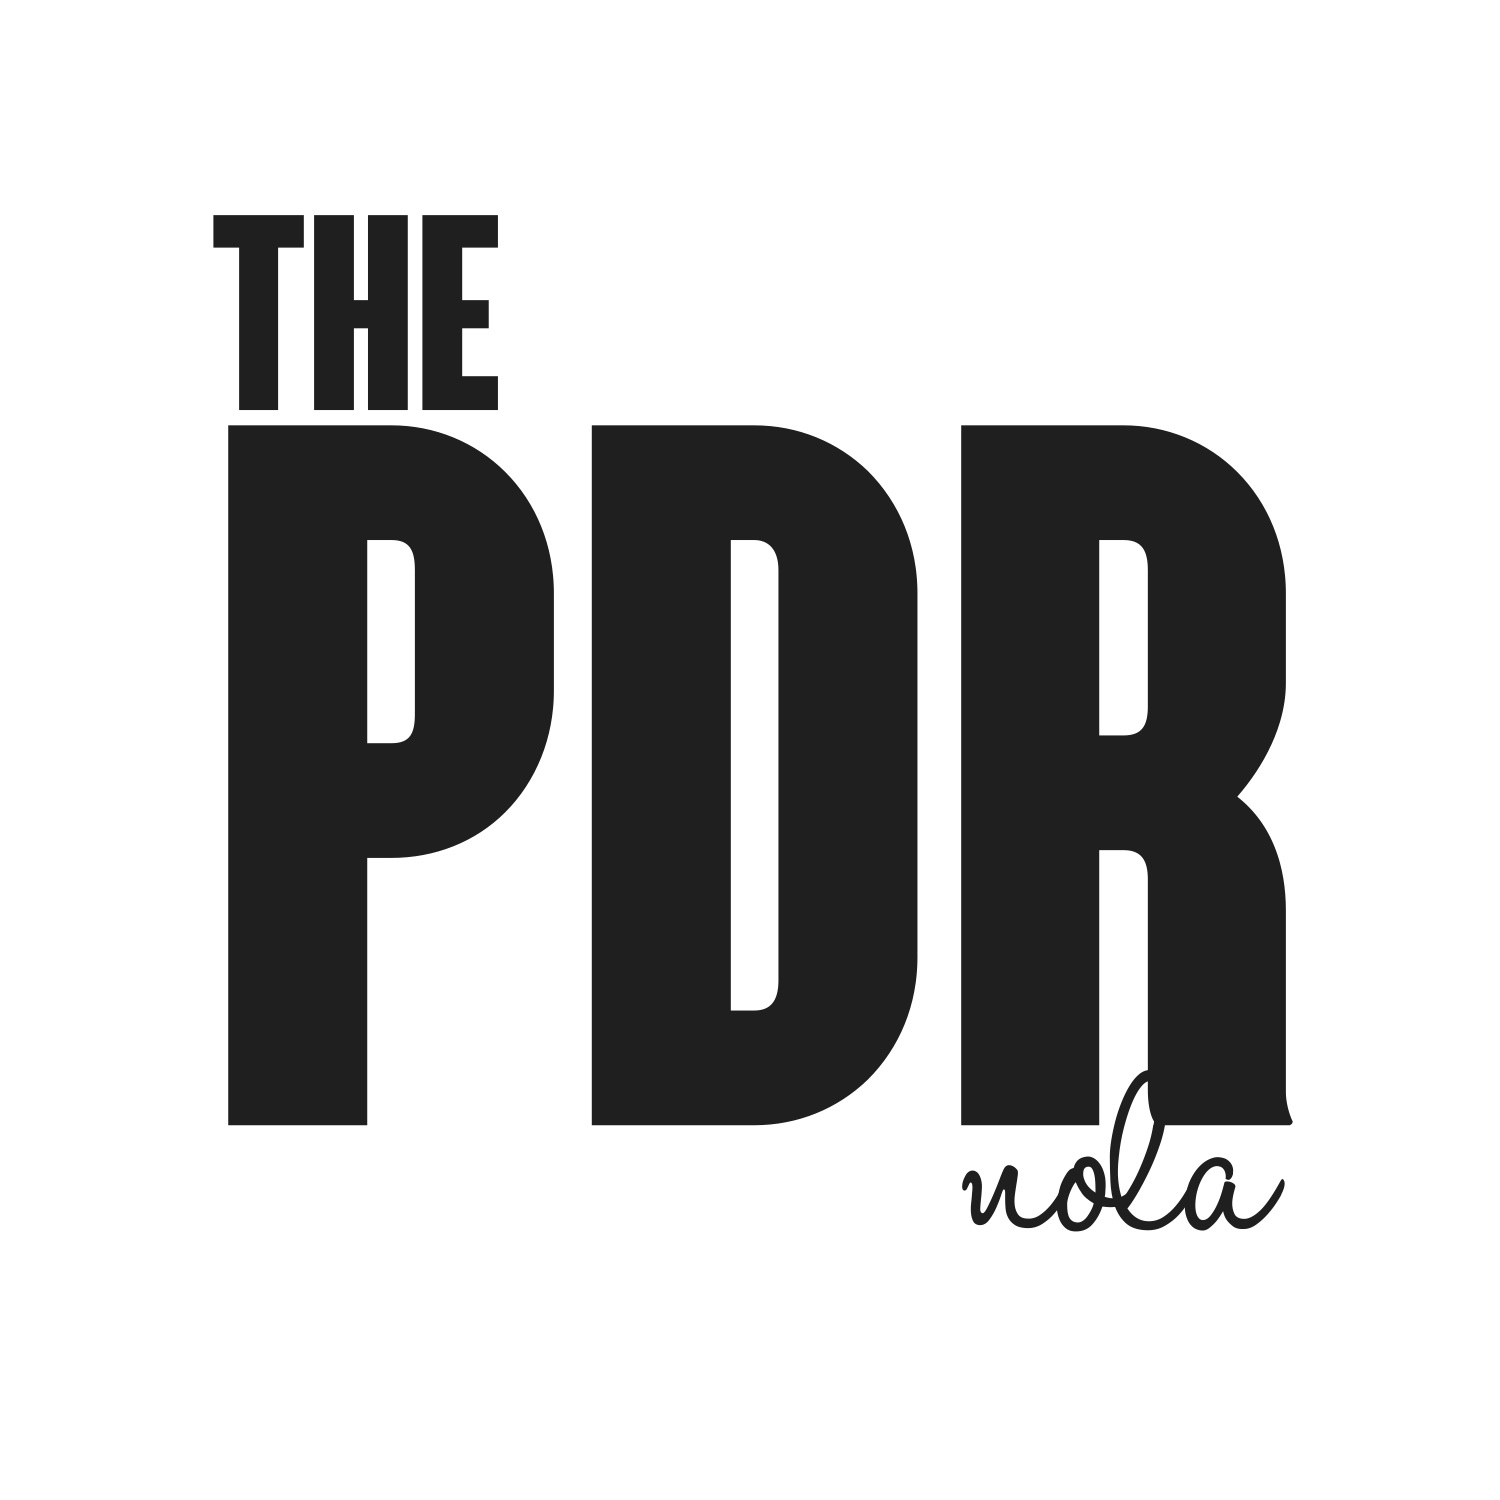 THE PDR